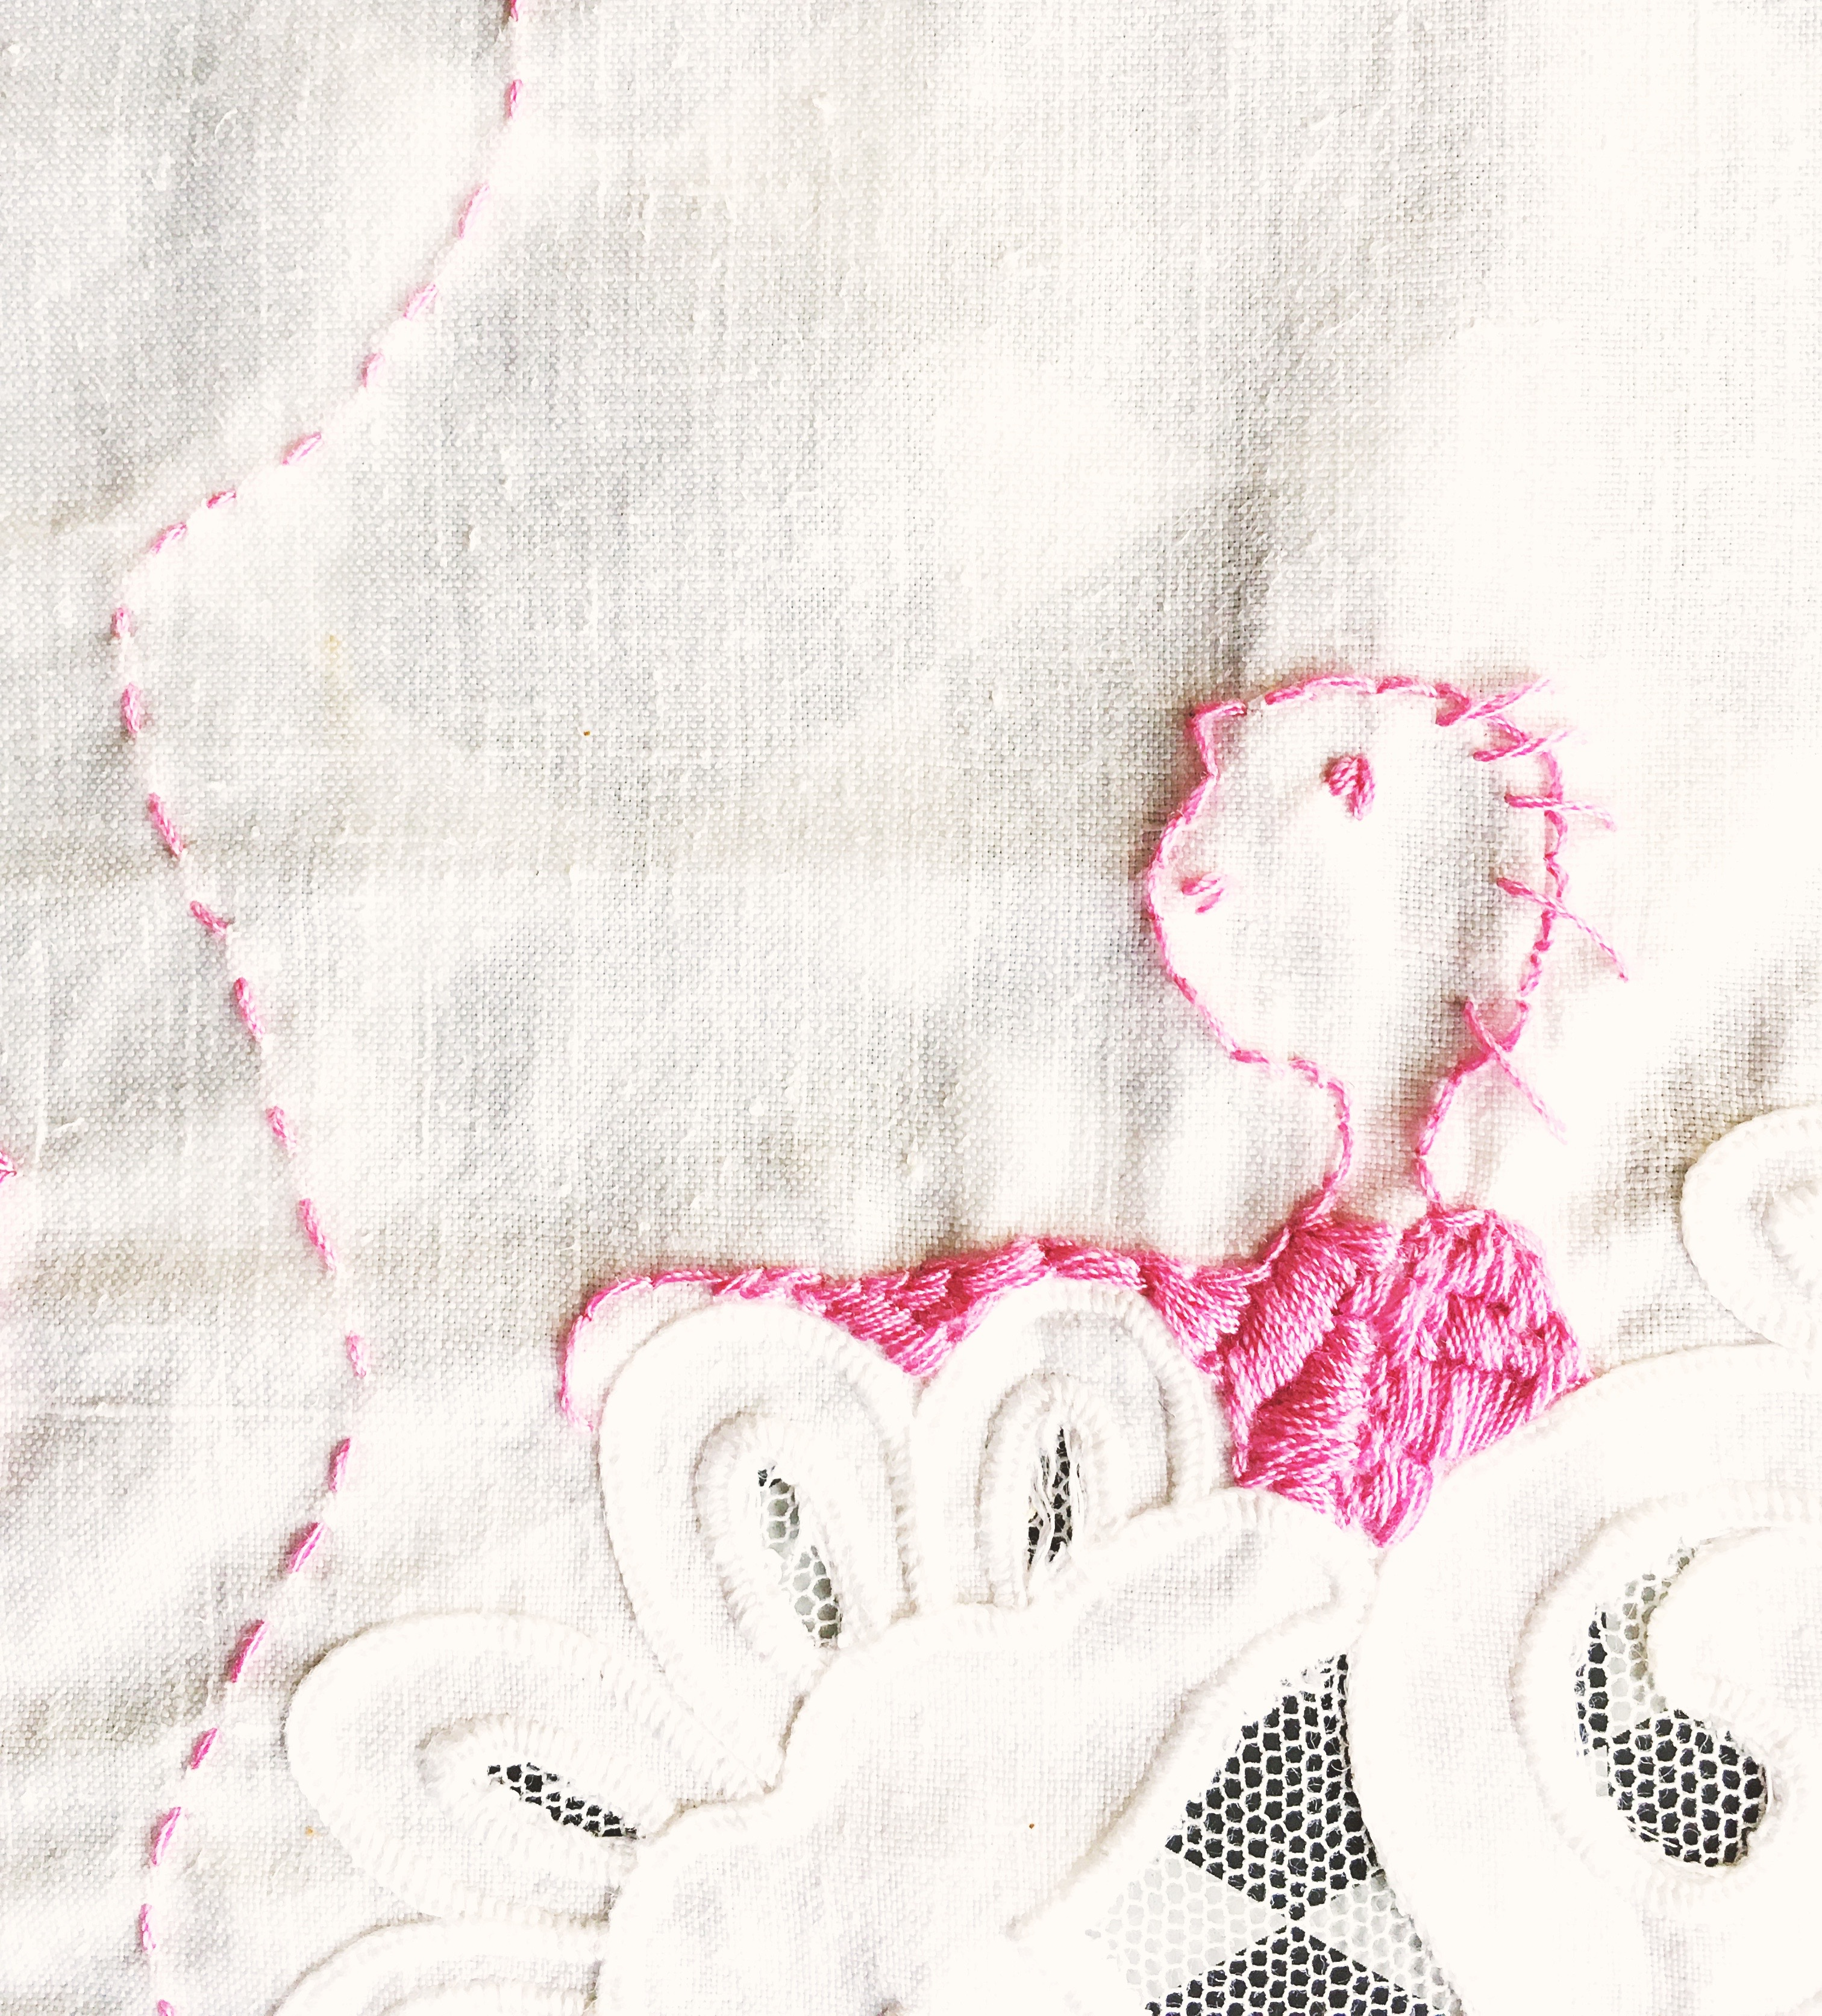 A detail from a hand embroidery on vintage textile